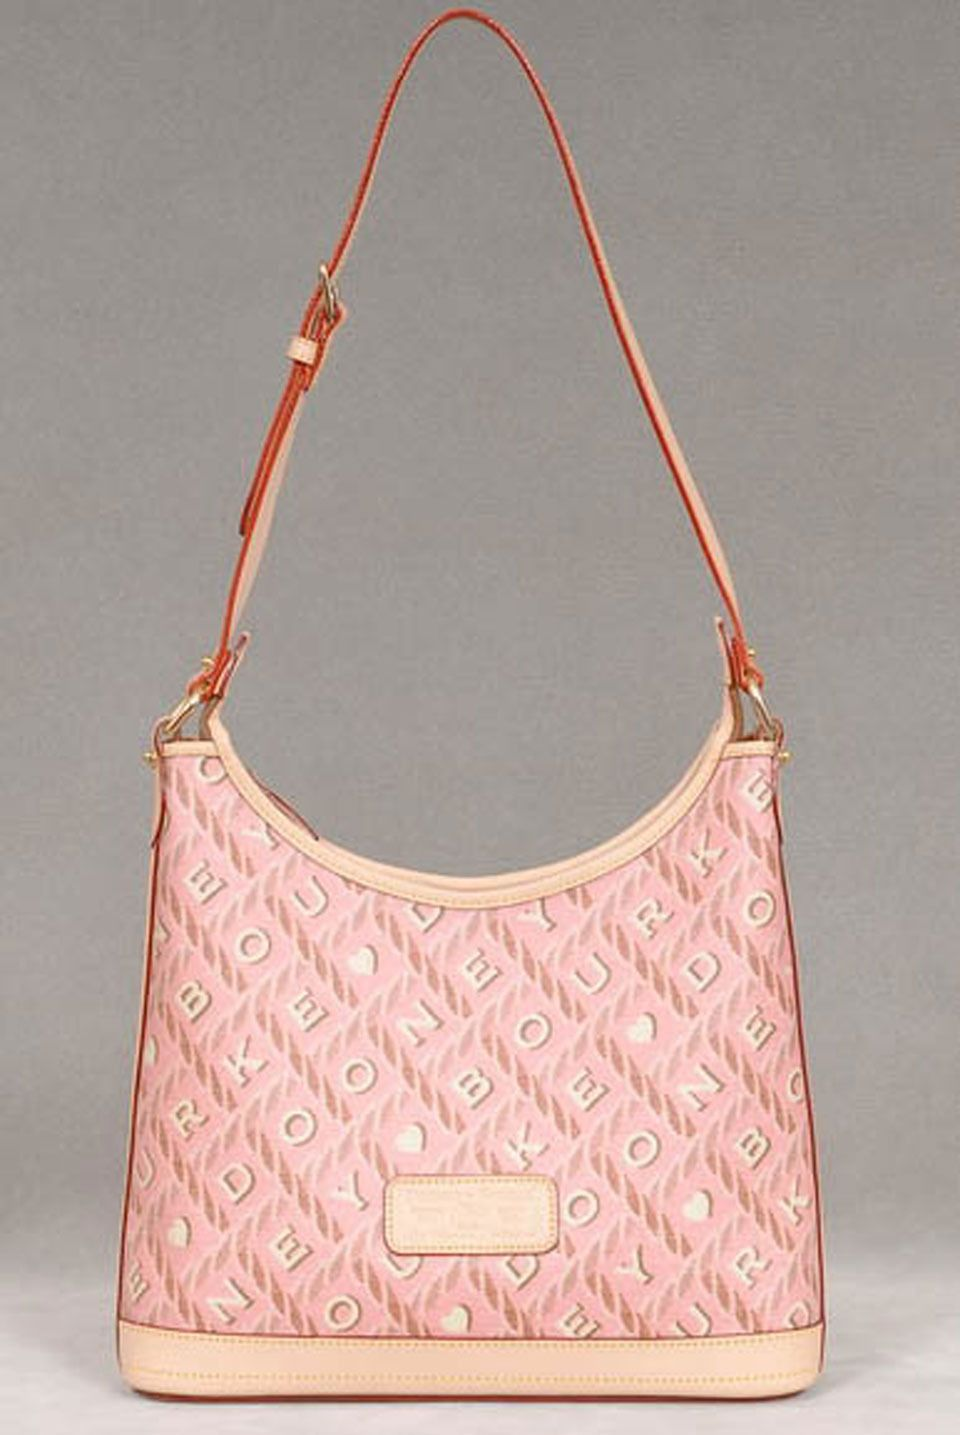 Dooney & Bourke Large Hobo In Multicolor | ME and my PURSES ...